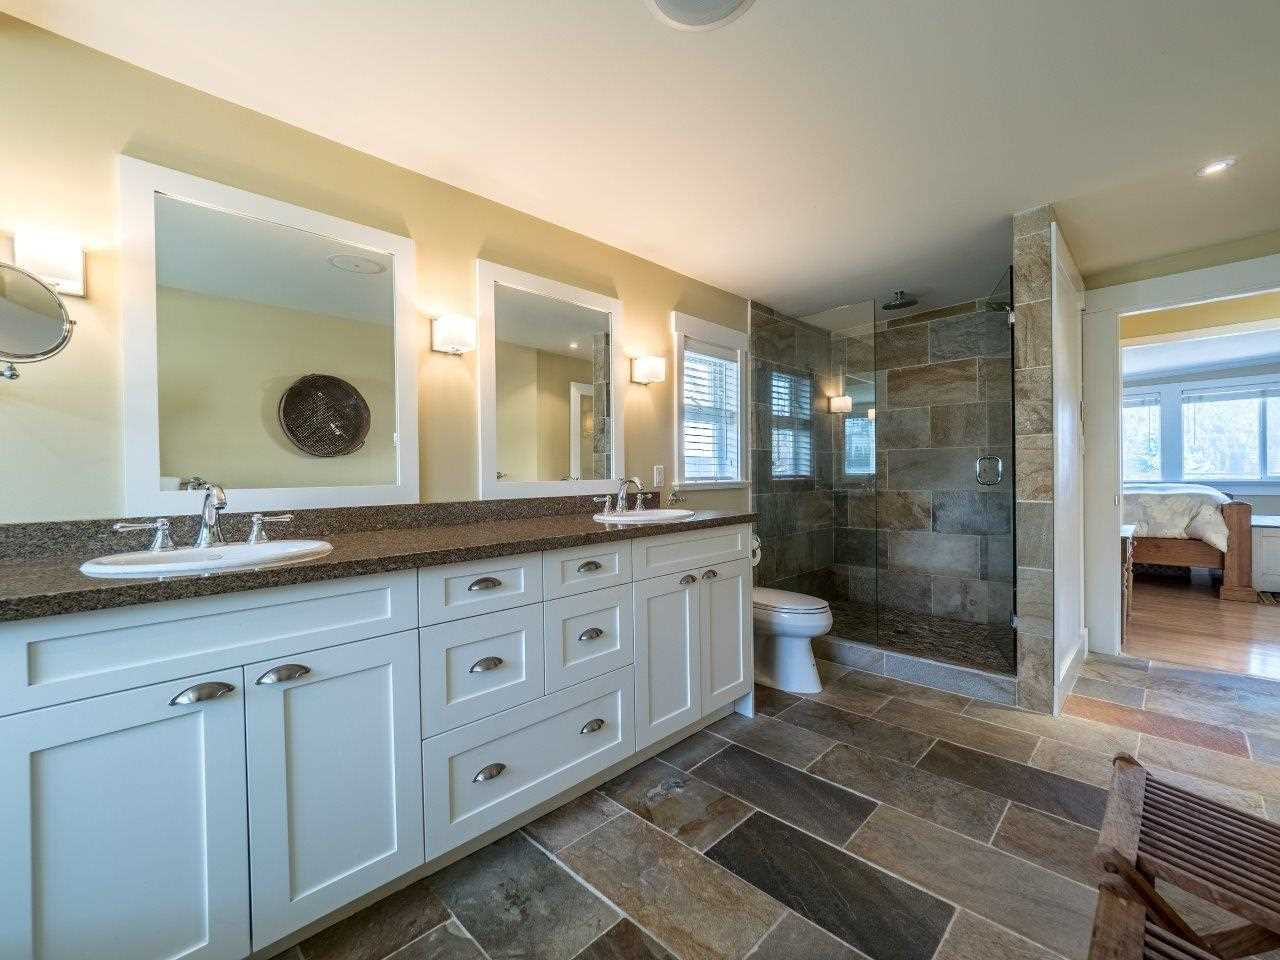 Photo 16: Photos: 345 BEACHVIEW DRIVE in North Vancouver: Dollarton House for sale : MLS®# R2035403